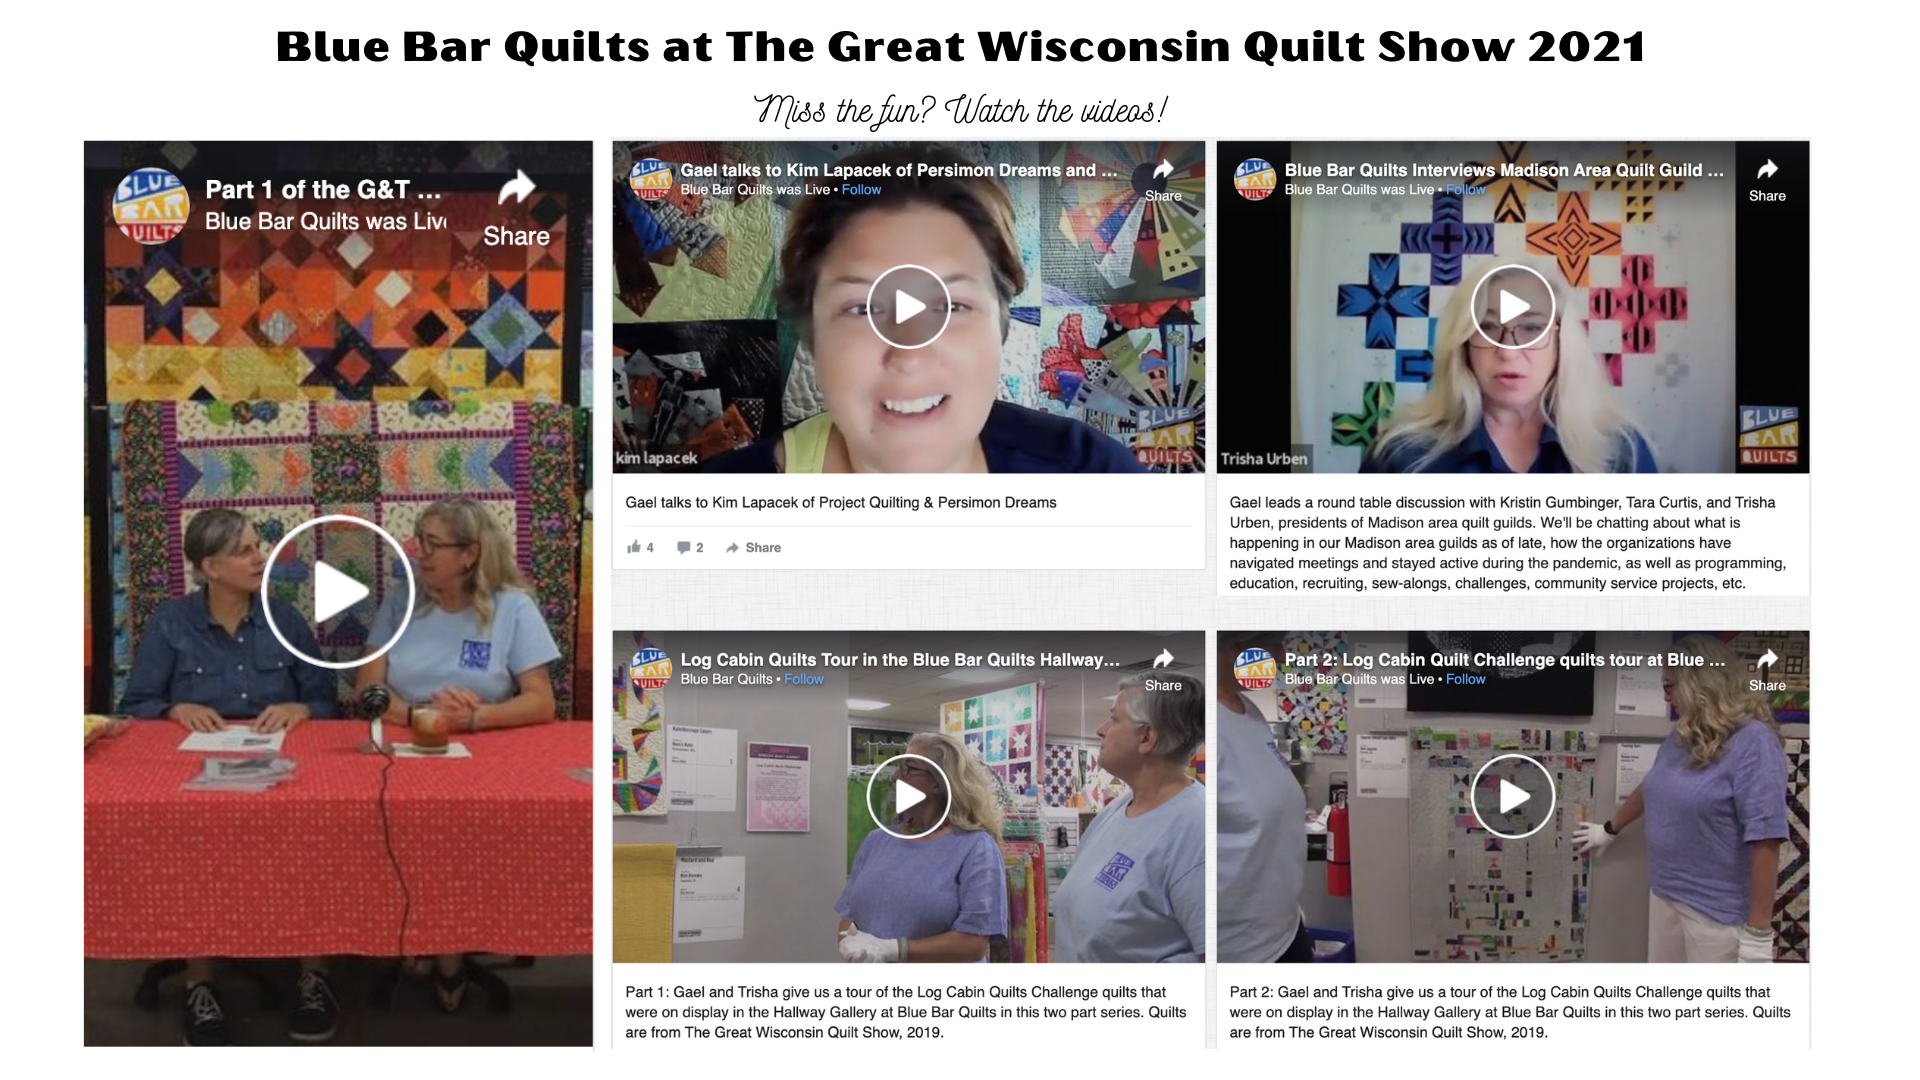 Watch Blue Bar Quilts during the Great Wisconsin Quilt Show Vendor Livestreams Sept 9-11, 2021!